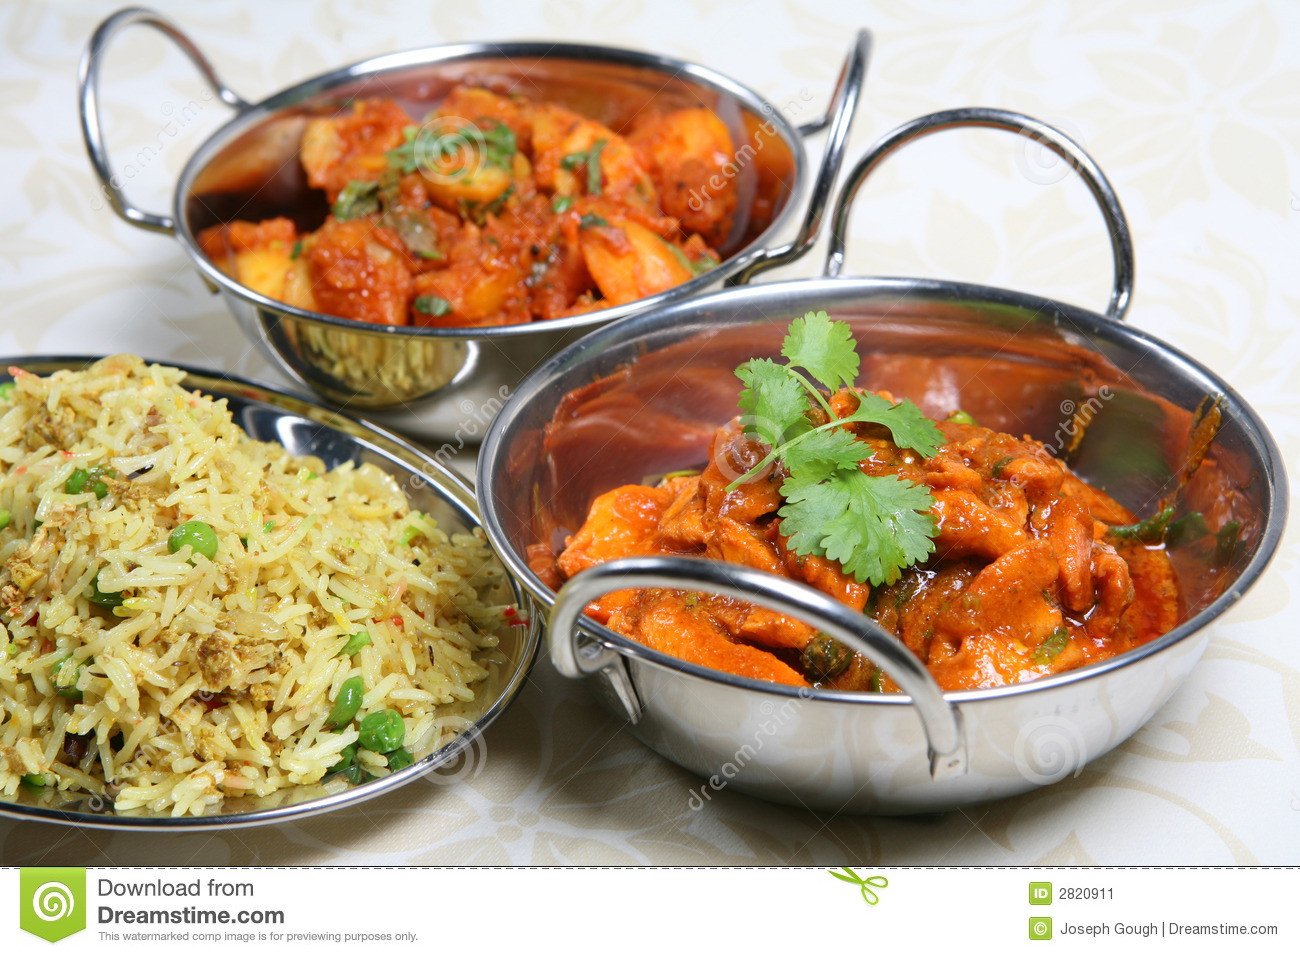 Indian Curry Dinner Meal Stock Image  Image: 2820911